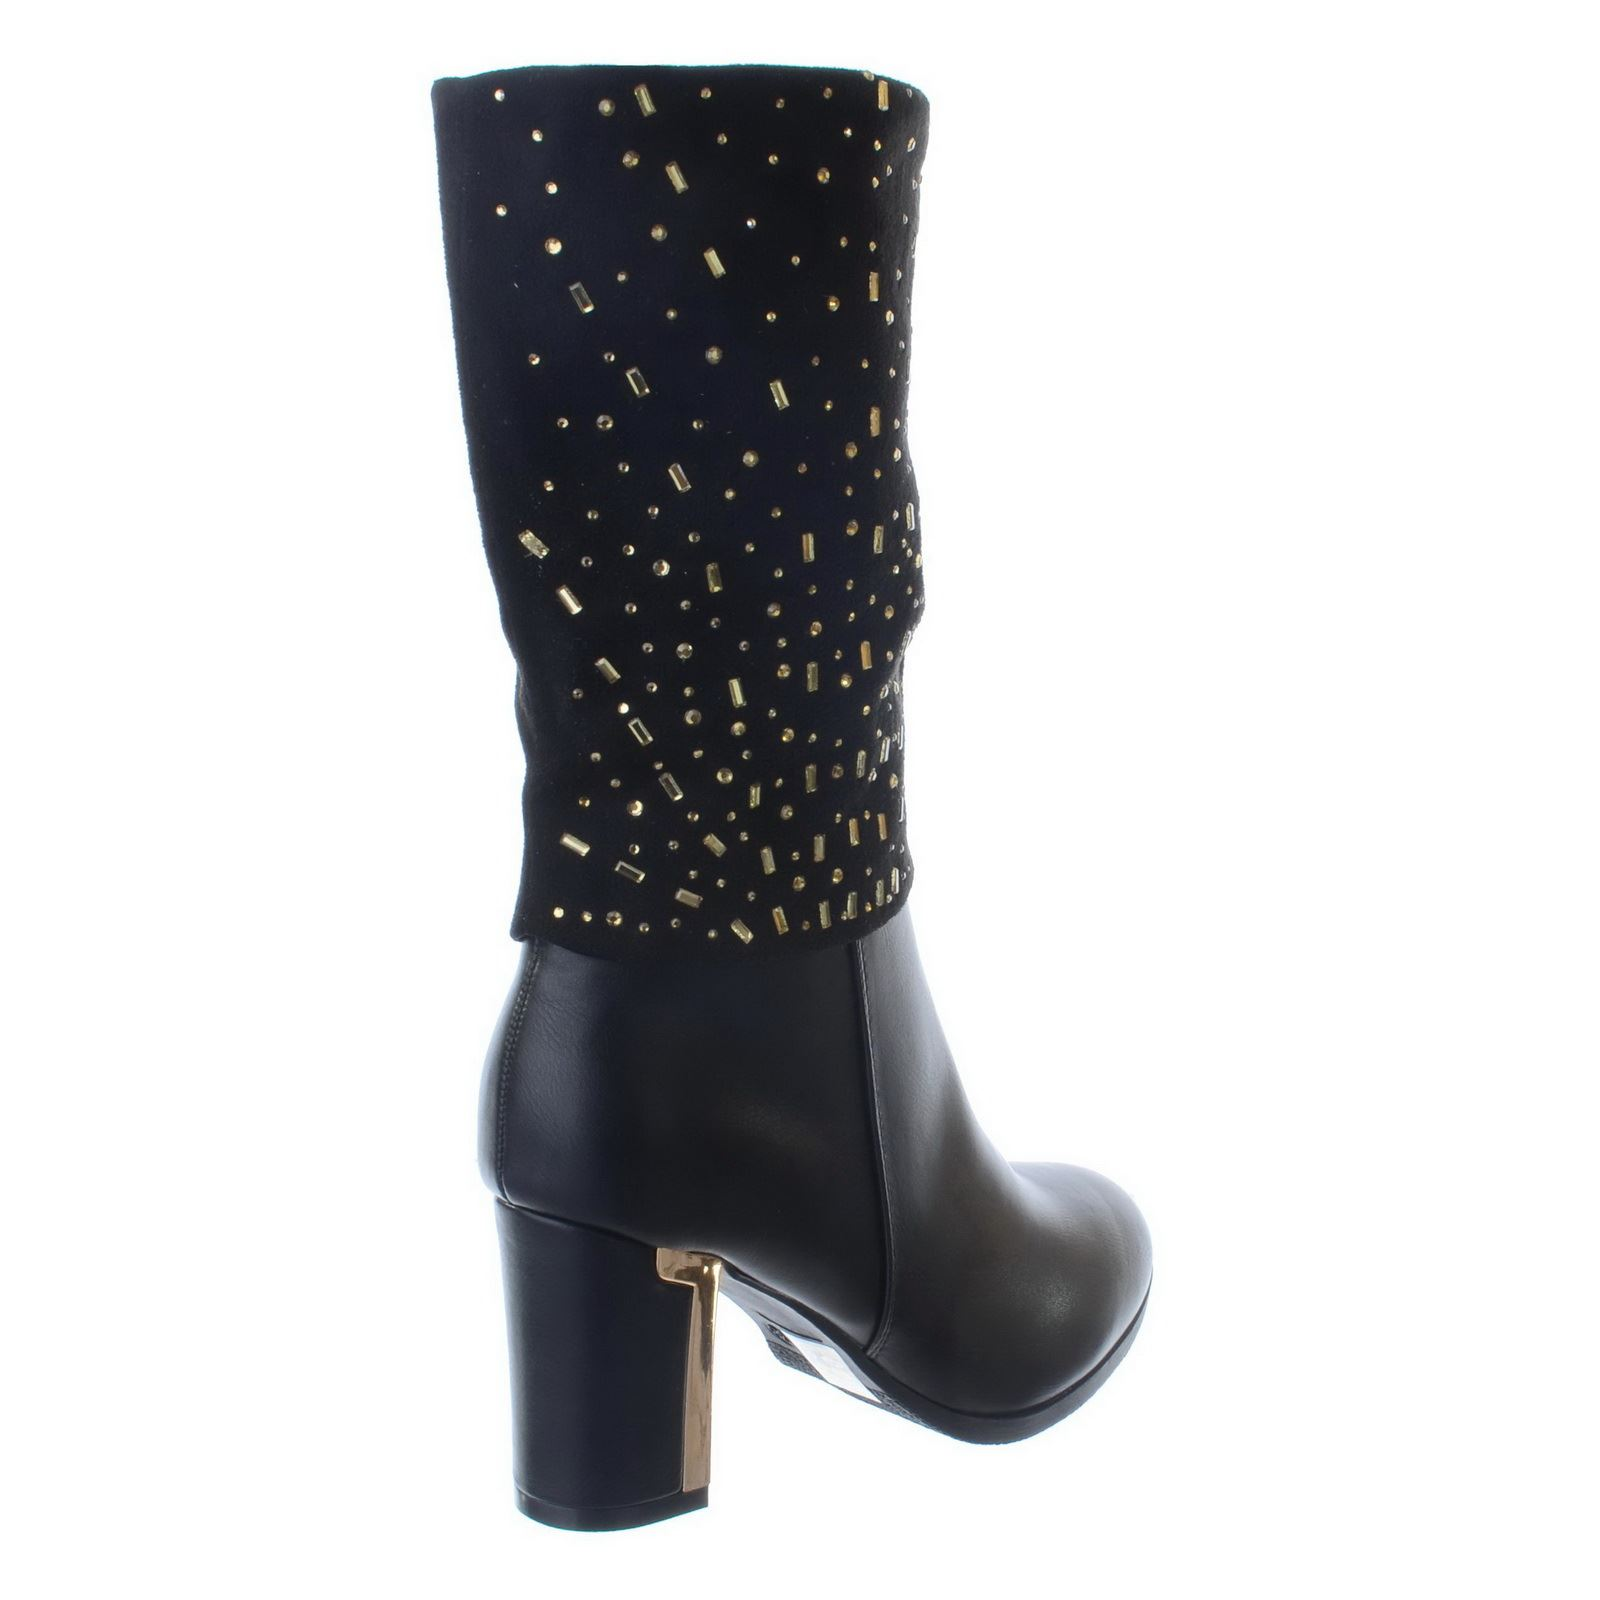 3e25753f8de NEW WOMENS LADIES MID HIGH BLOCK HEEL ZIP UP MID CALF DIAMANTE BOOTS ...